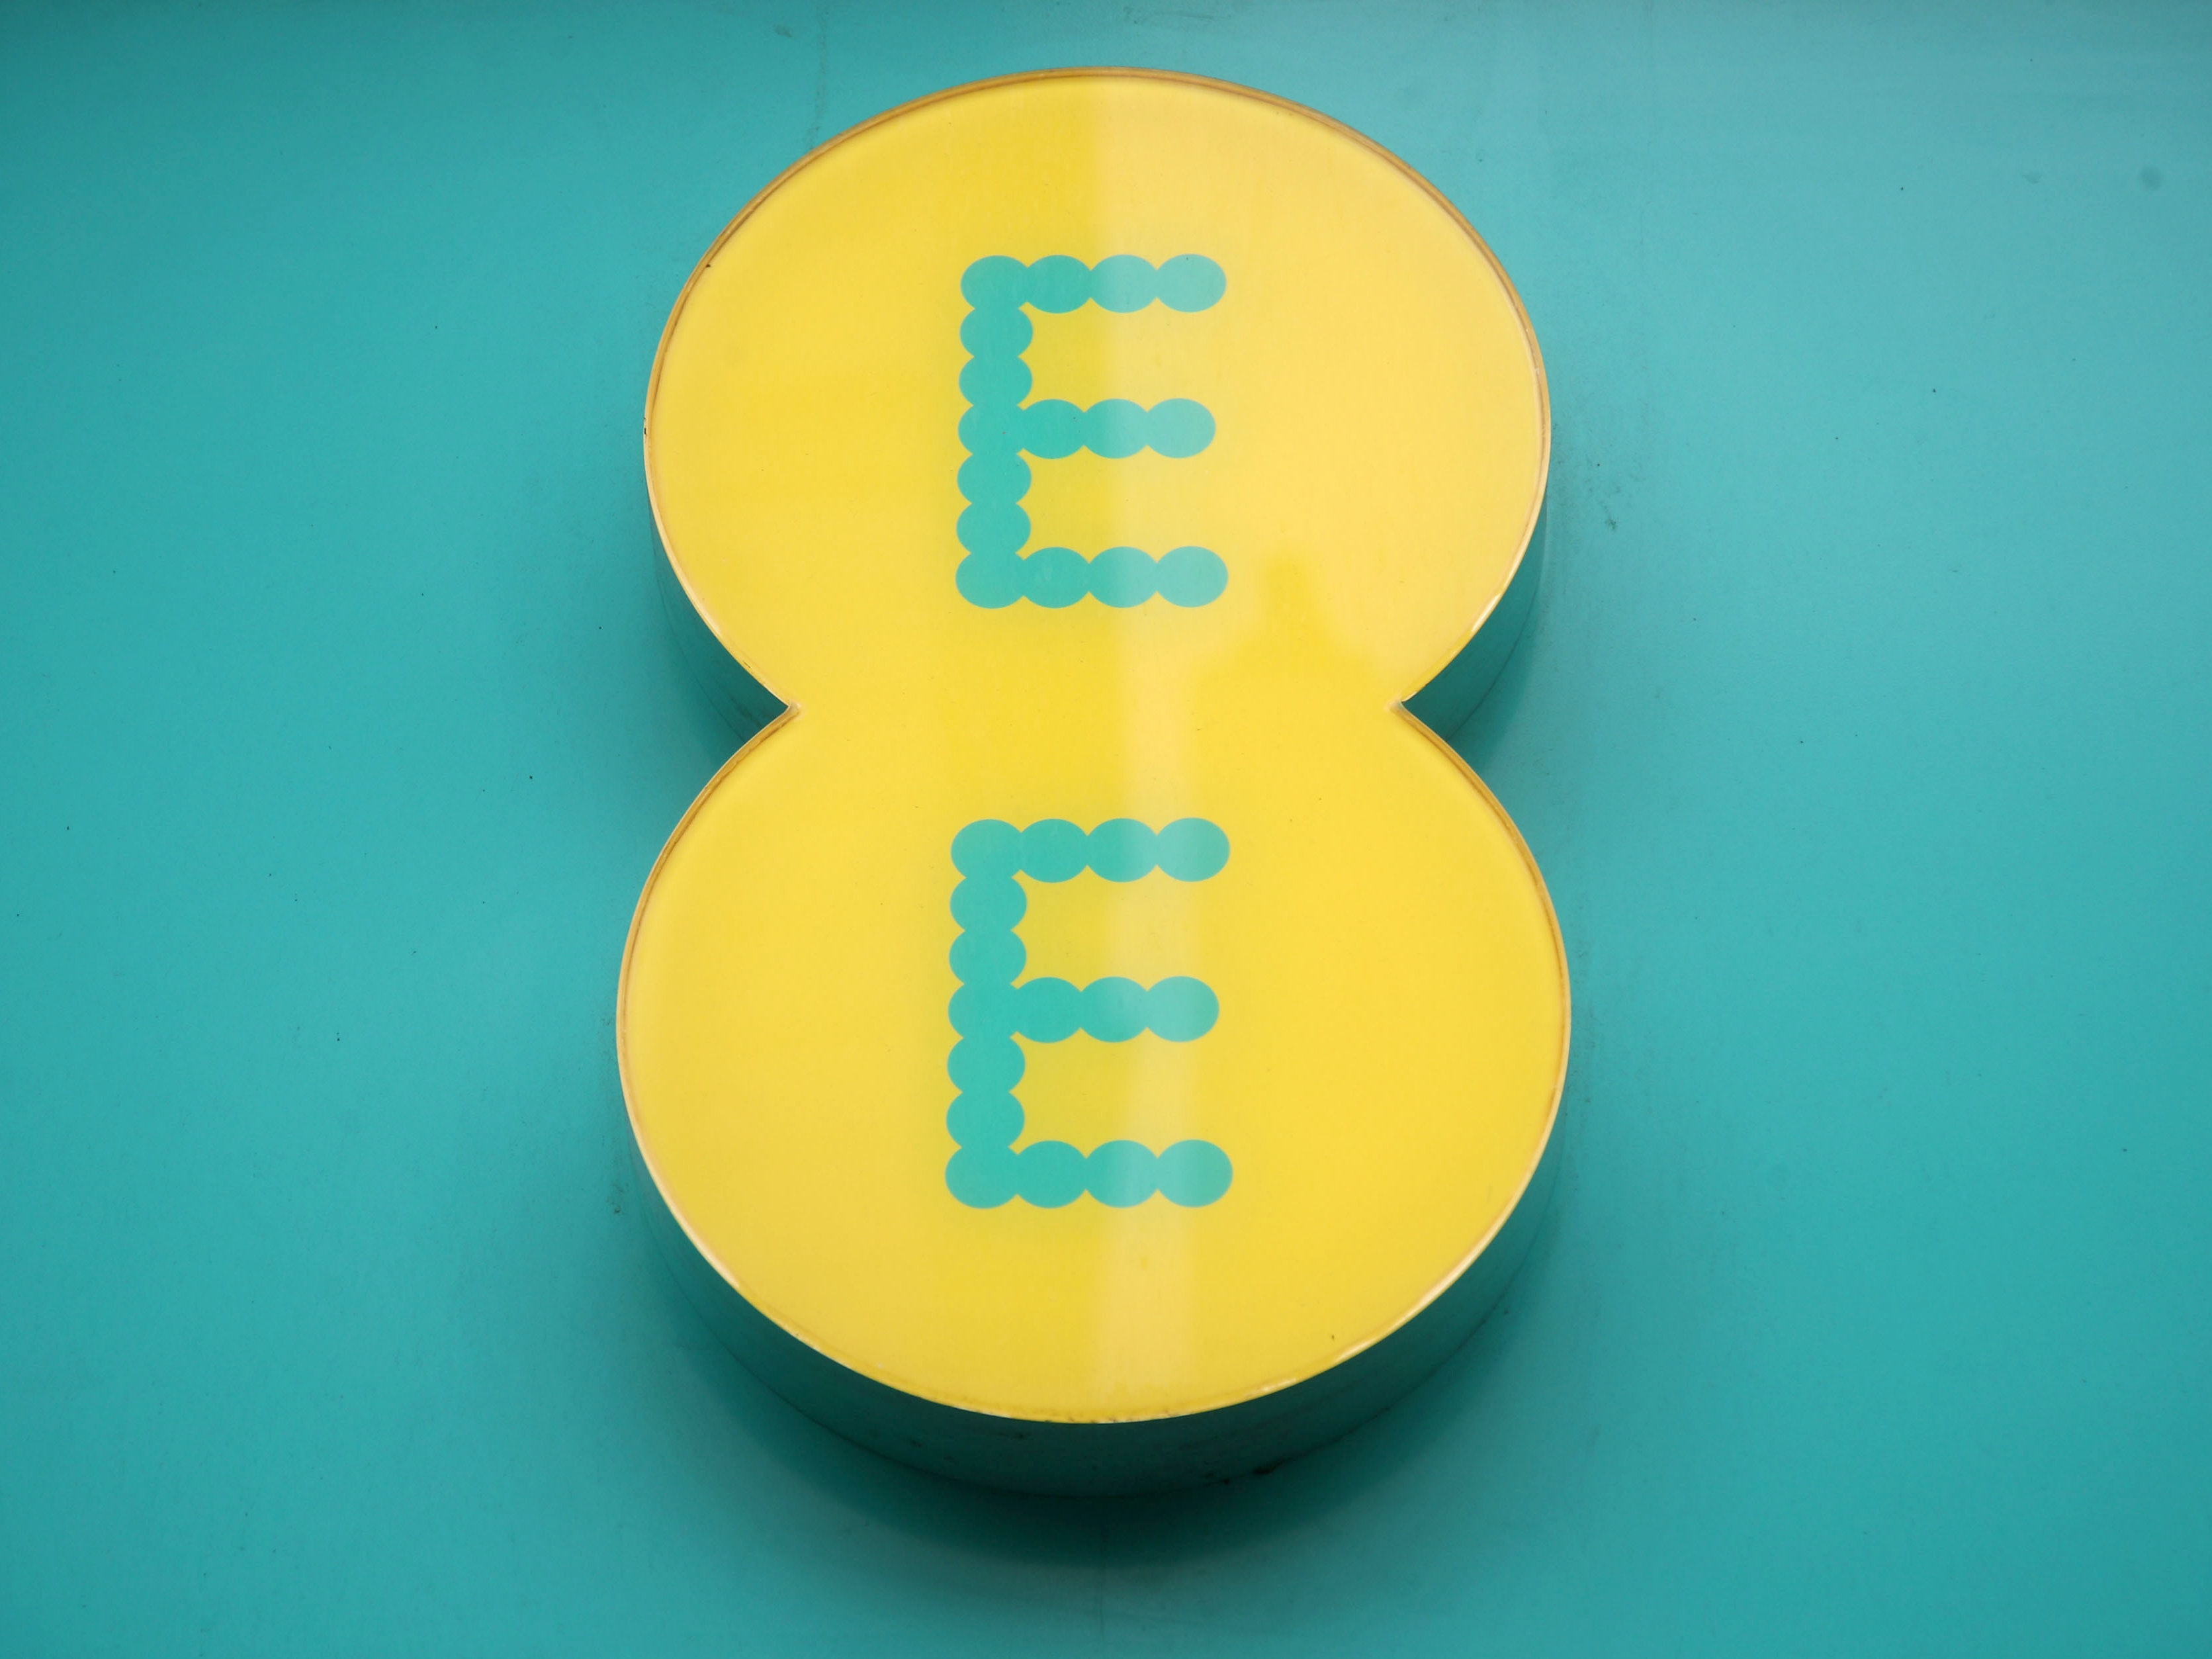 EE launches 5G network